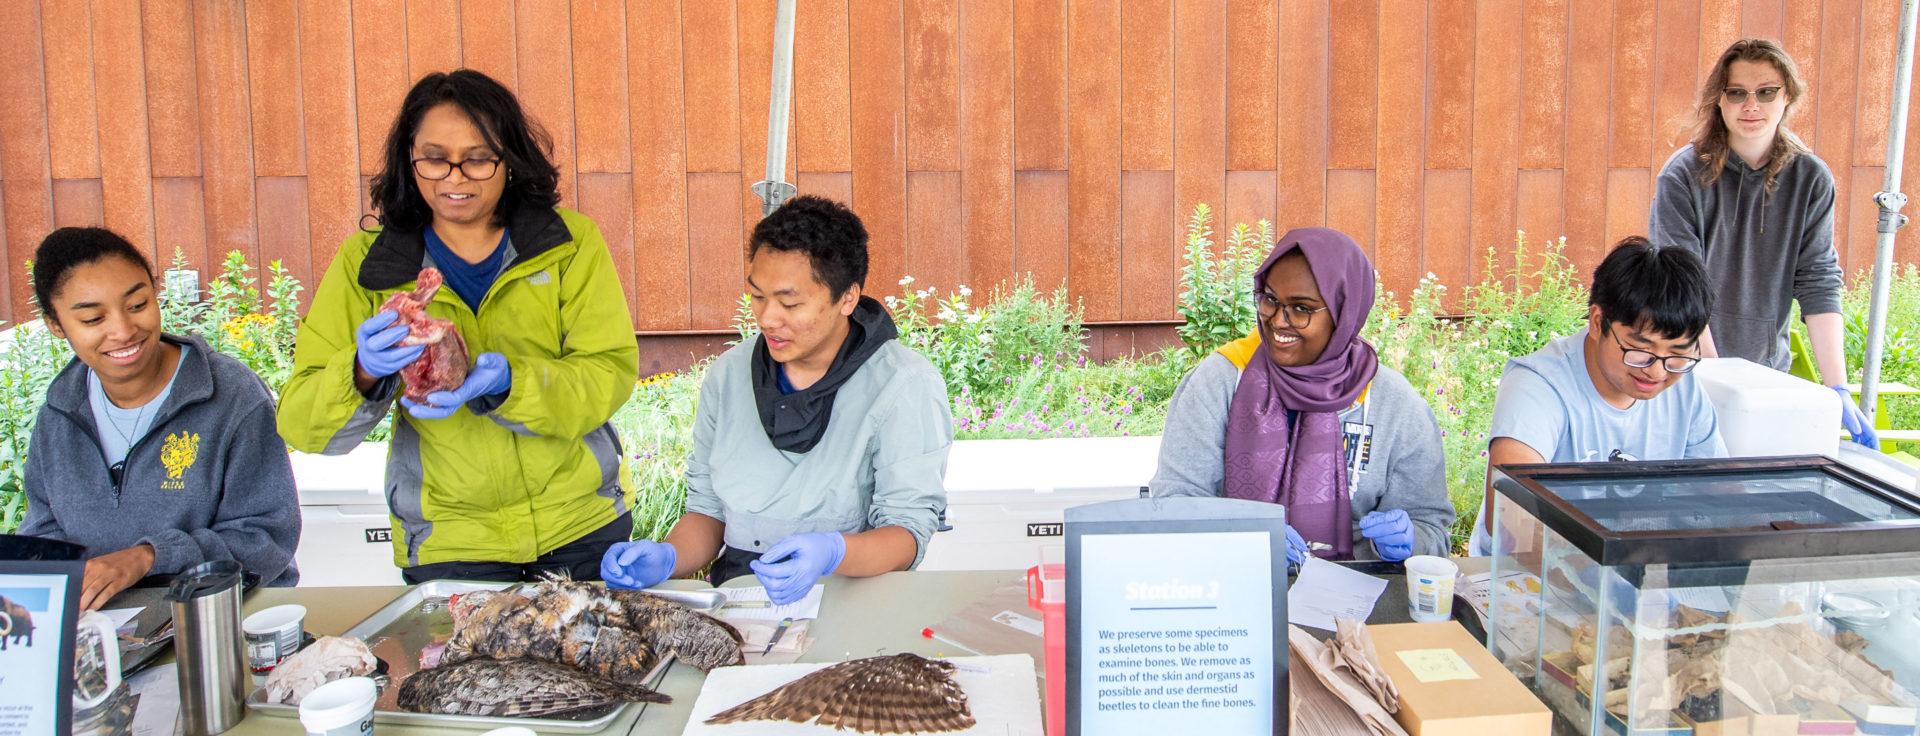 A group of high school interns, mentors, and scientists working together to prepare specimens